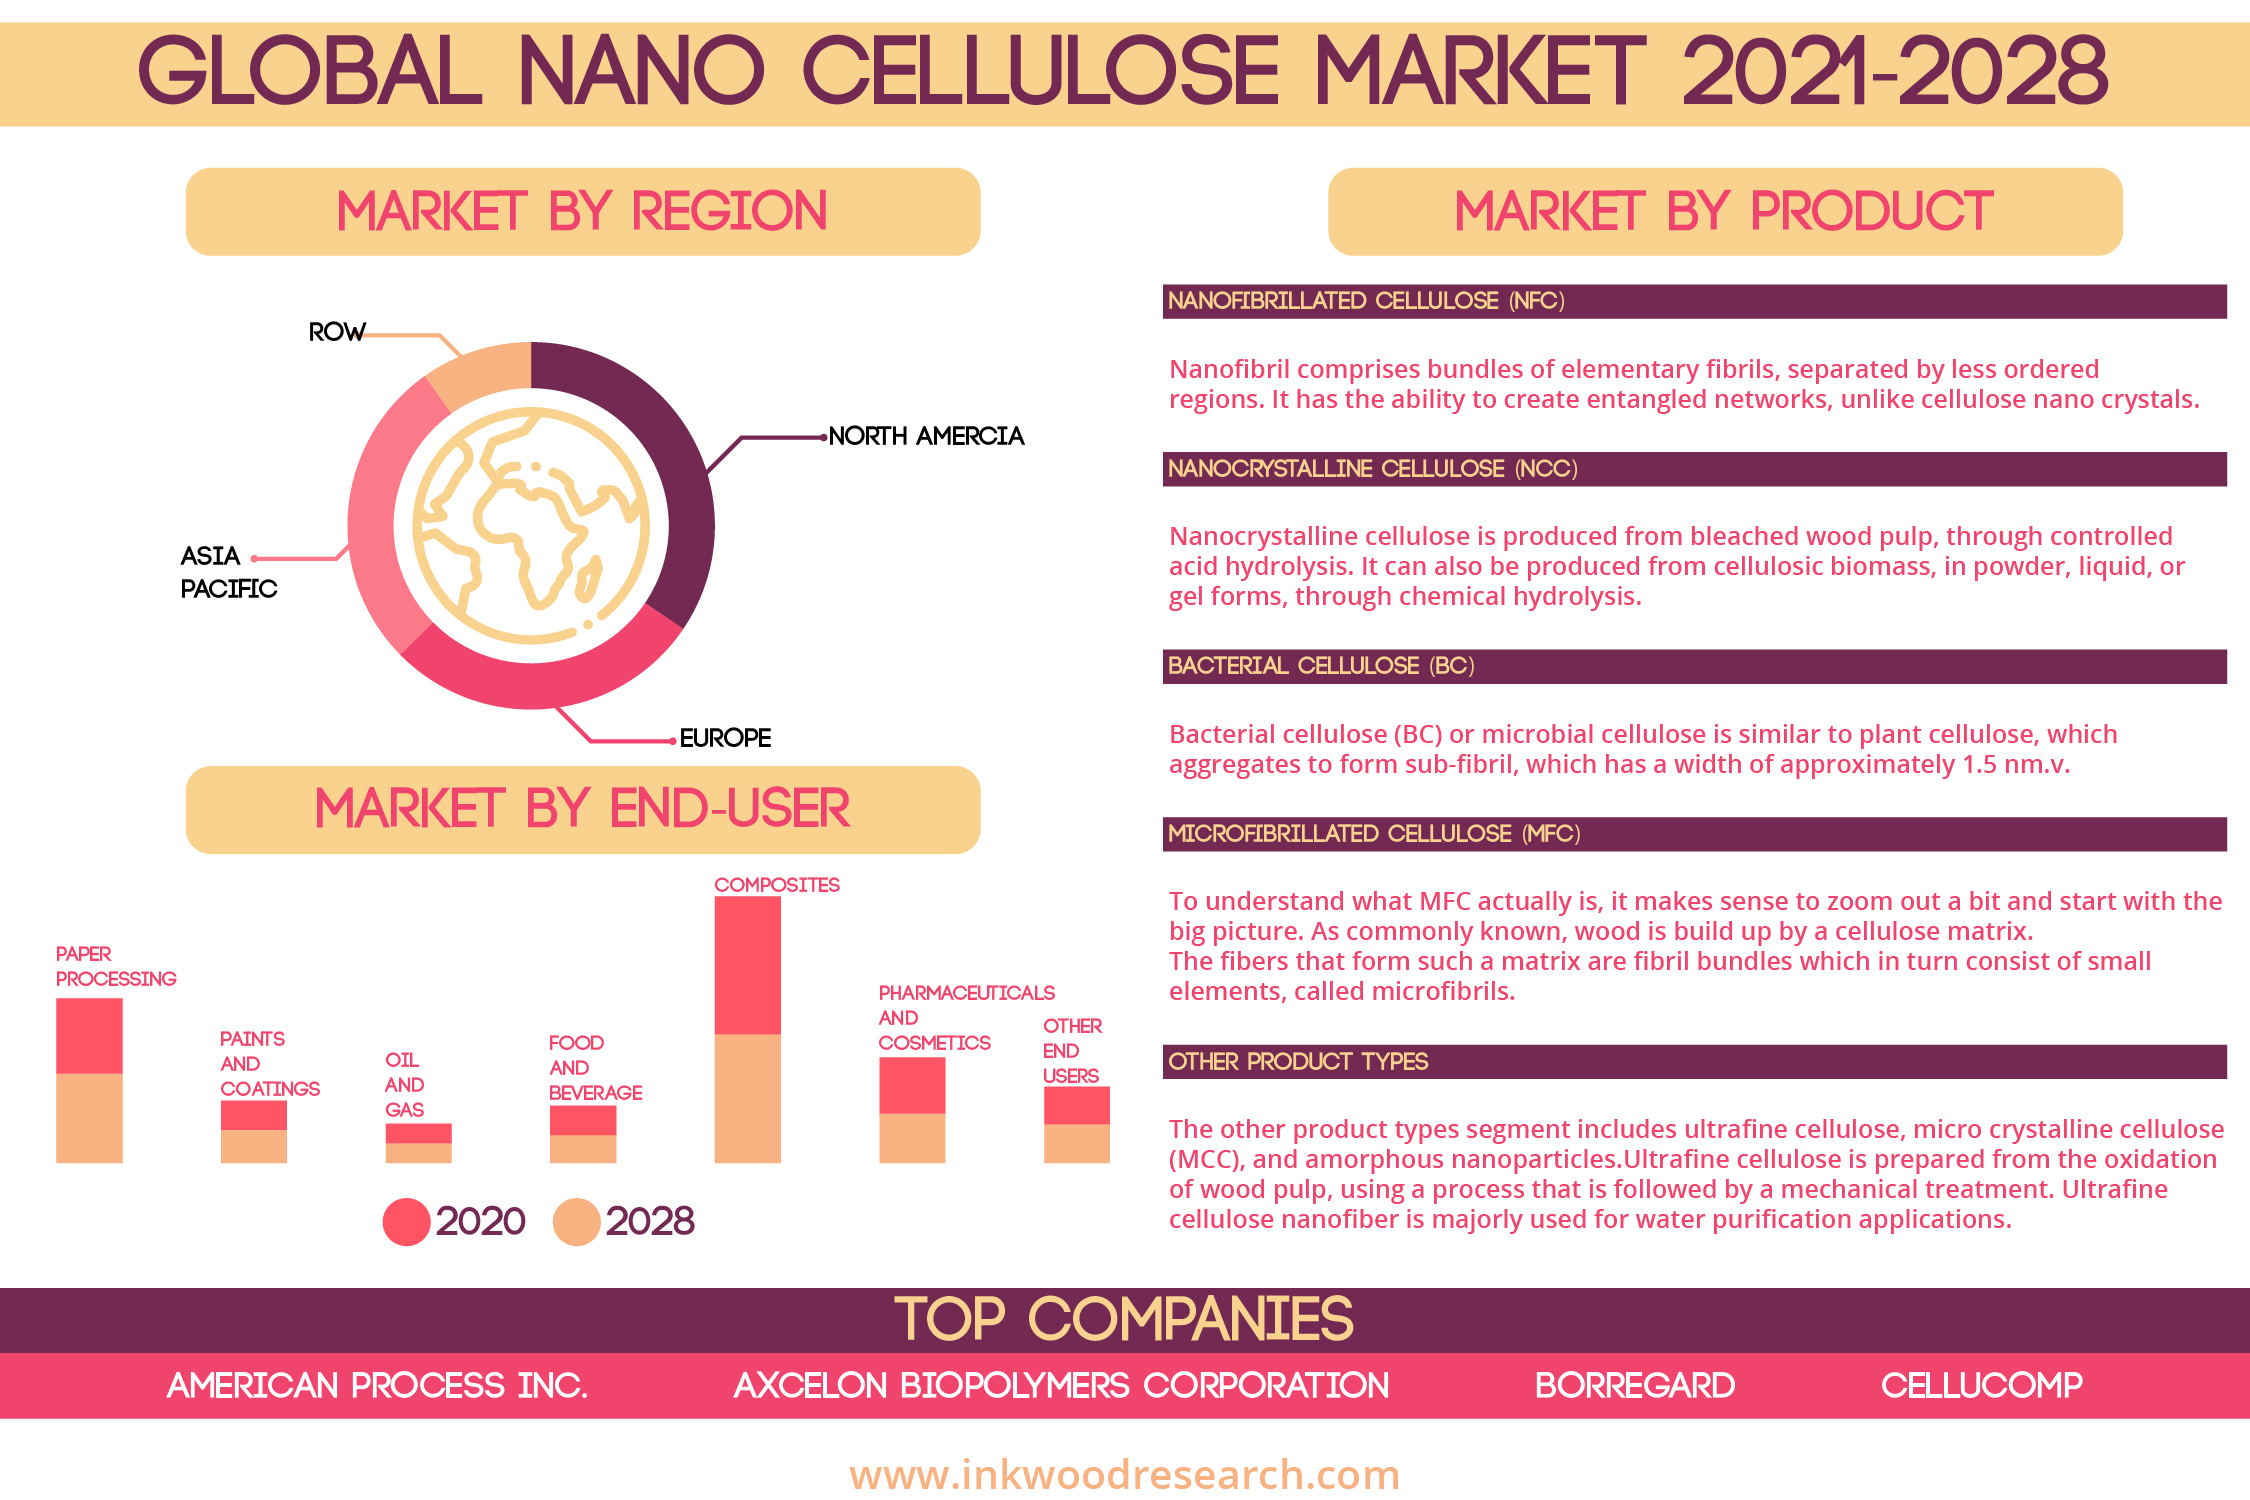 Advantages Properties to boost Opportunities in the Global Nano Cellulose Market